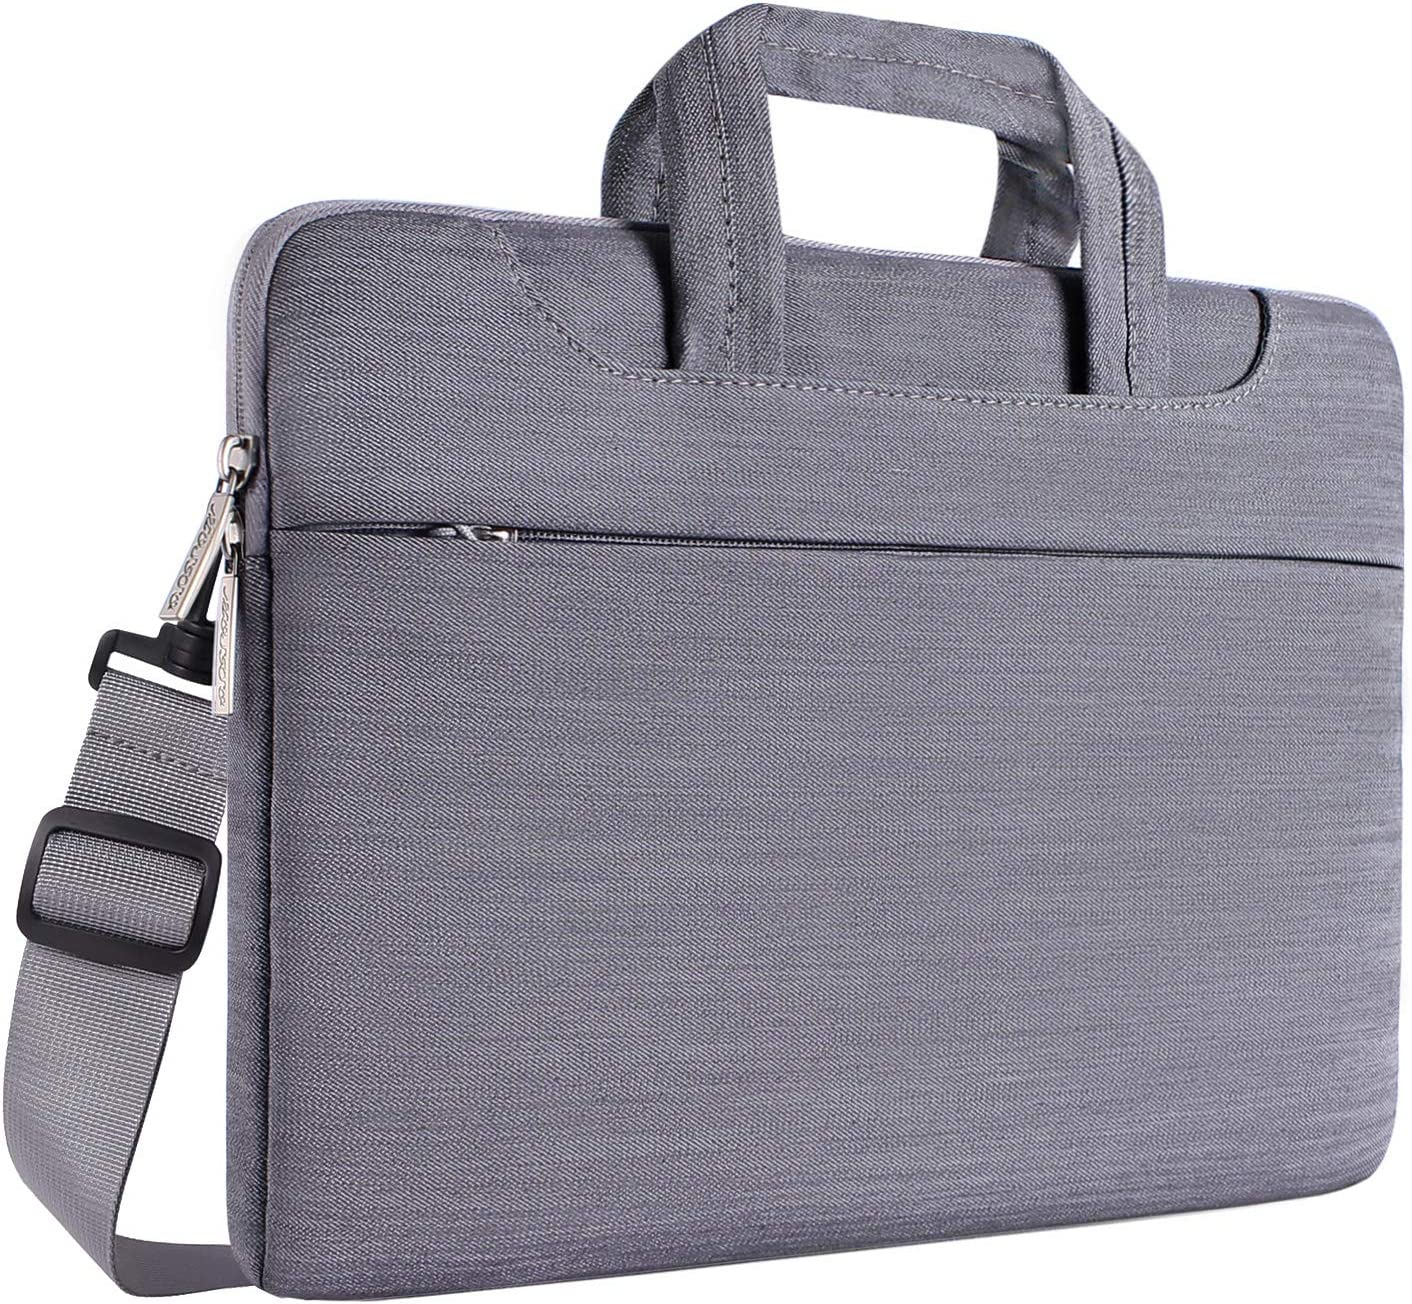 MOSISO Laptop Shoulder Bag Compatible with 15 inch MacBook Pro Touch Bar A1990 A1707, ThinkPad X1 Yoga, 14 HP Acer Chromebook, 2019 Surface Laptop 3 15, Denim Briefcase Handbag Sleeve, Light Gray